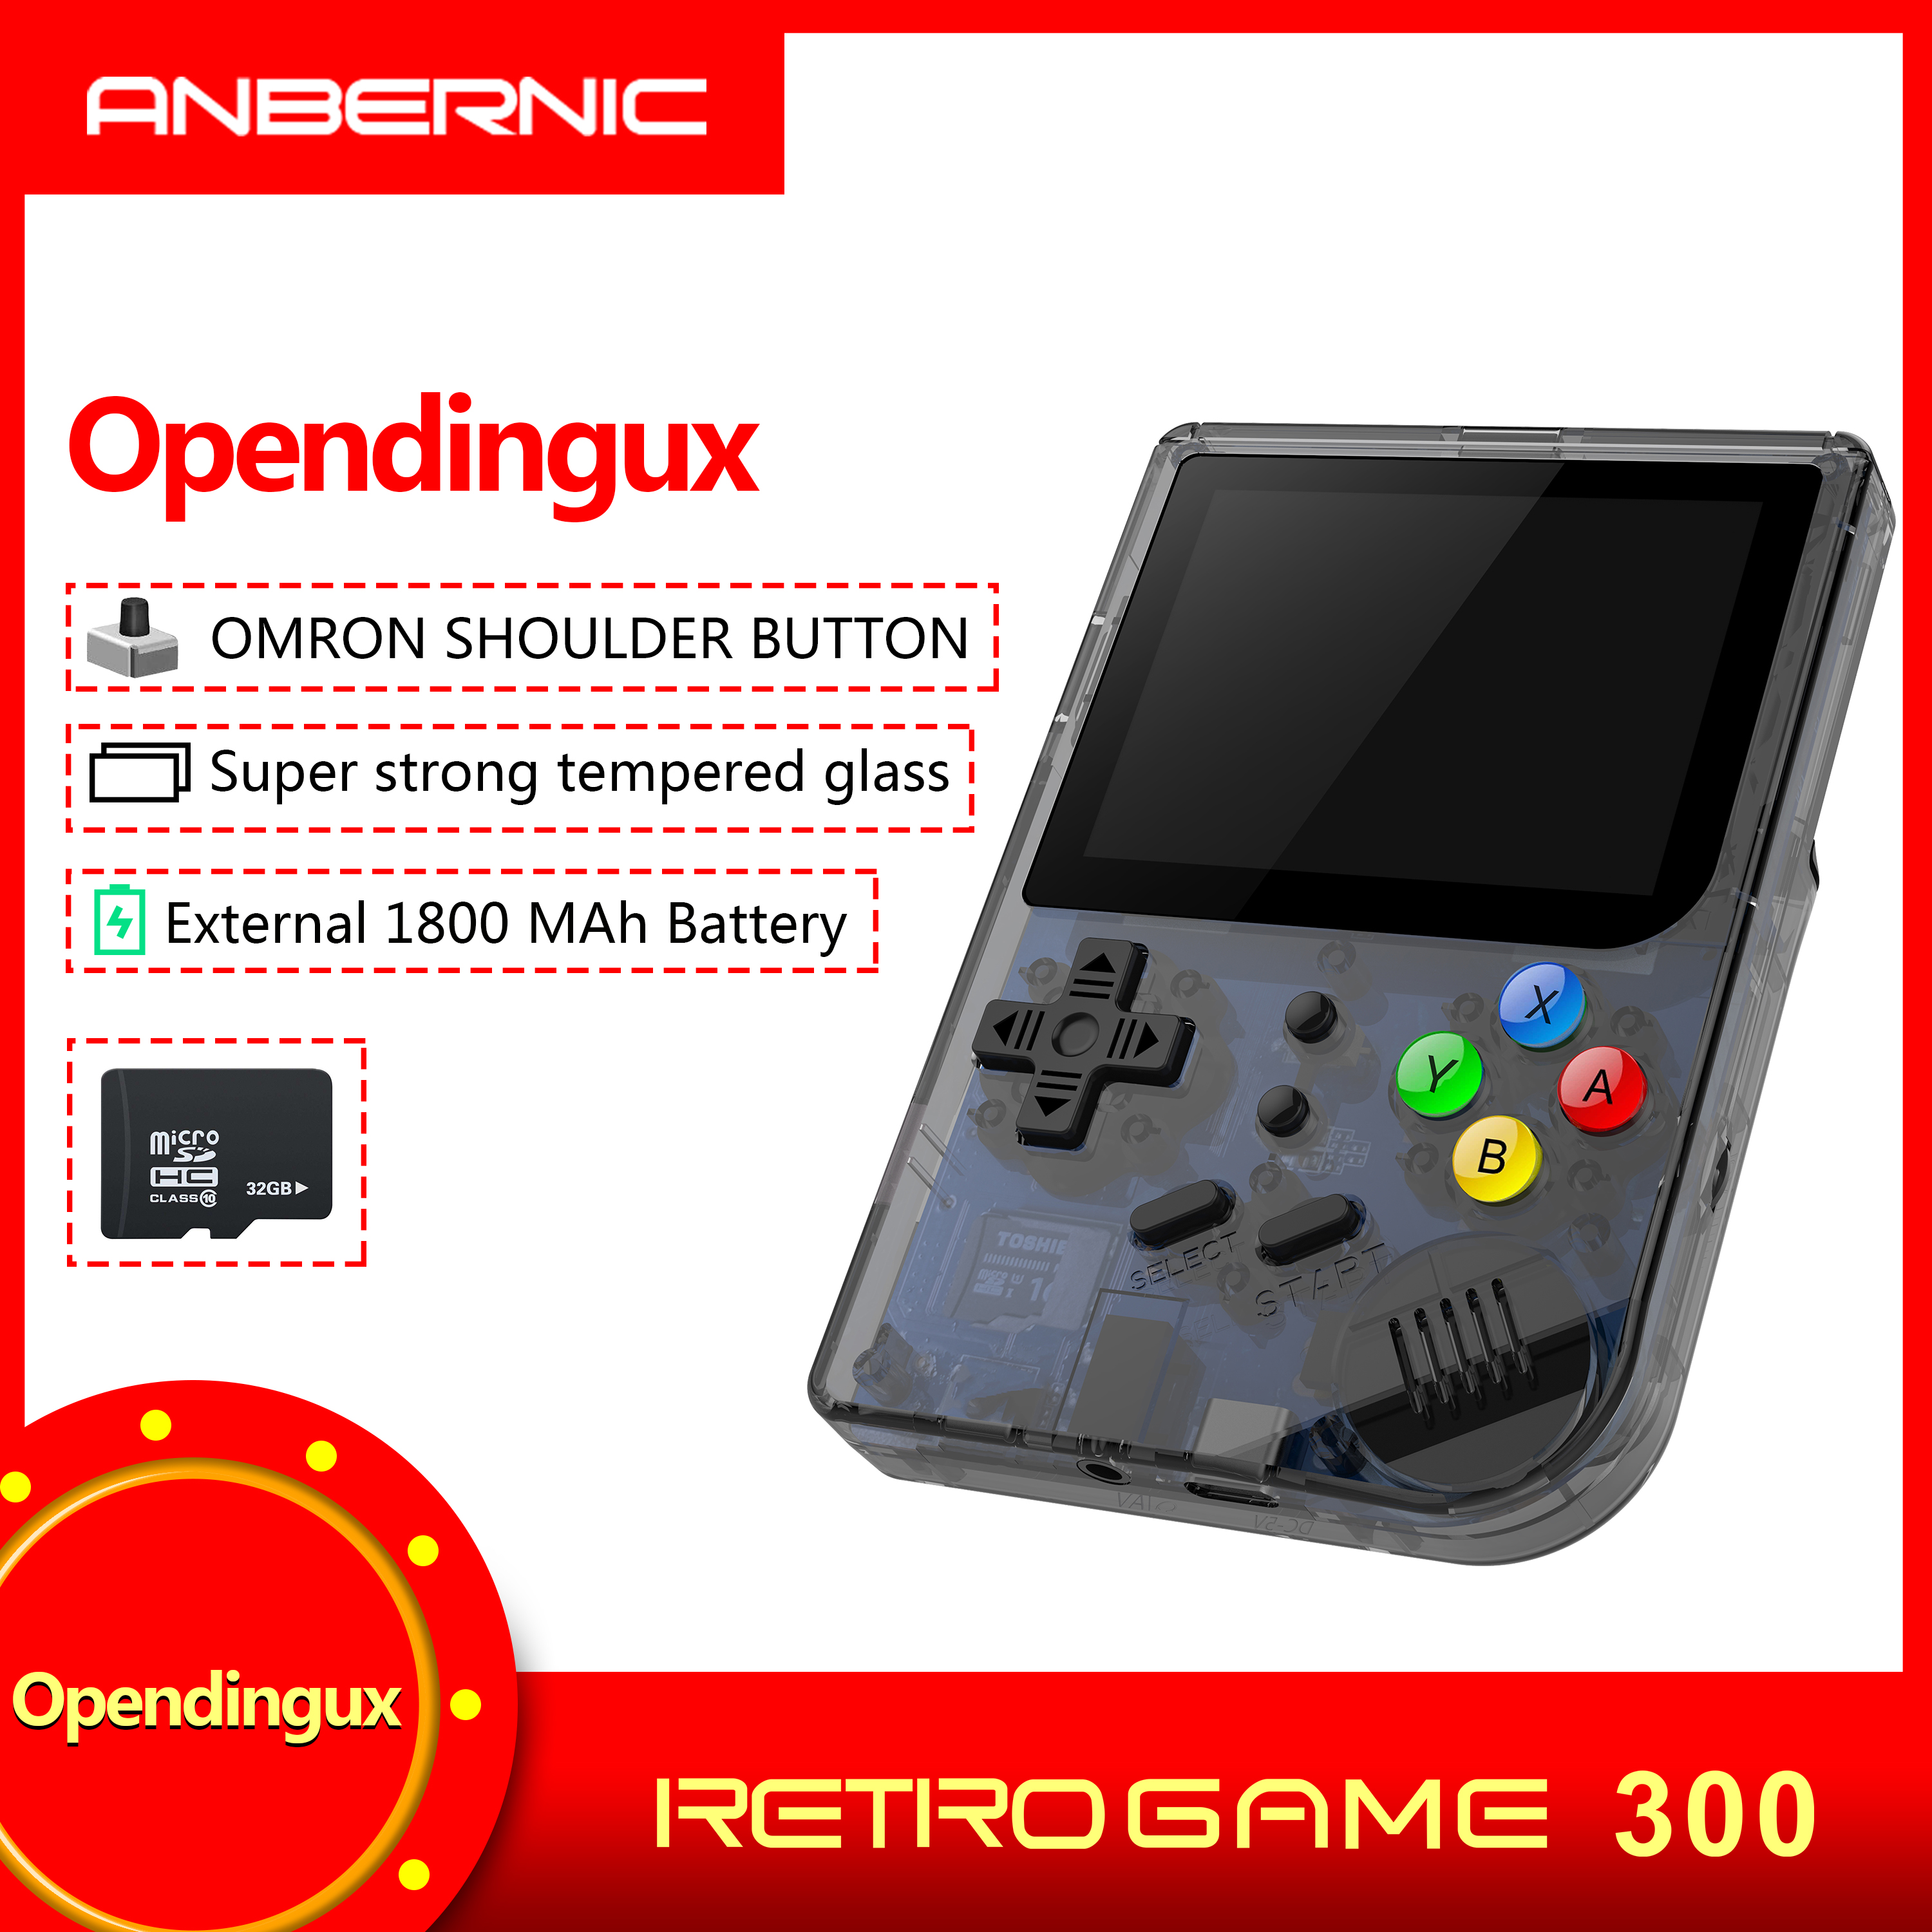 Rg300 3 Inch Video Games Retro Console Build-In 3000 Games Handheld for  PS1 Neogeo Gbc Gb Md Open System RG 300 Retro game 300